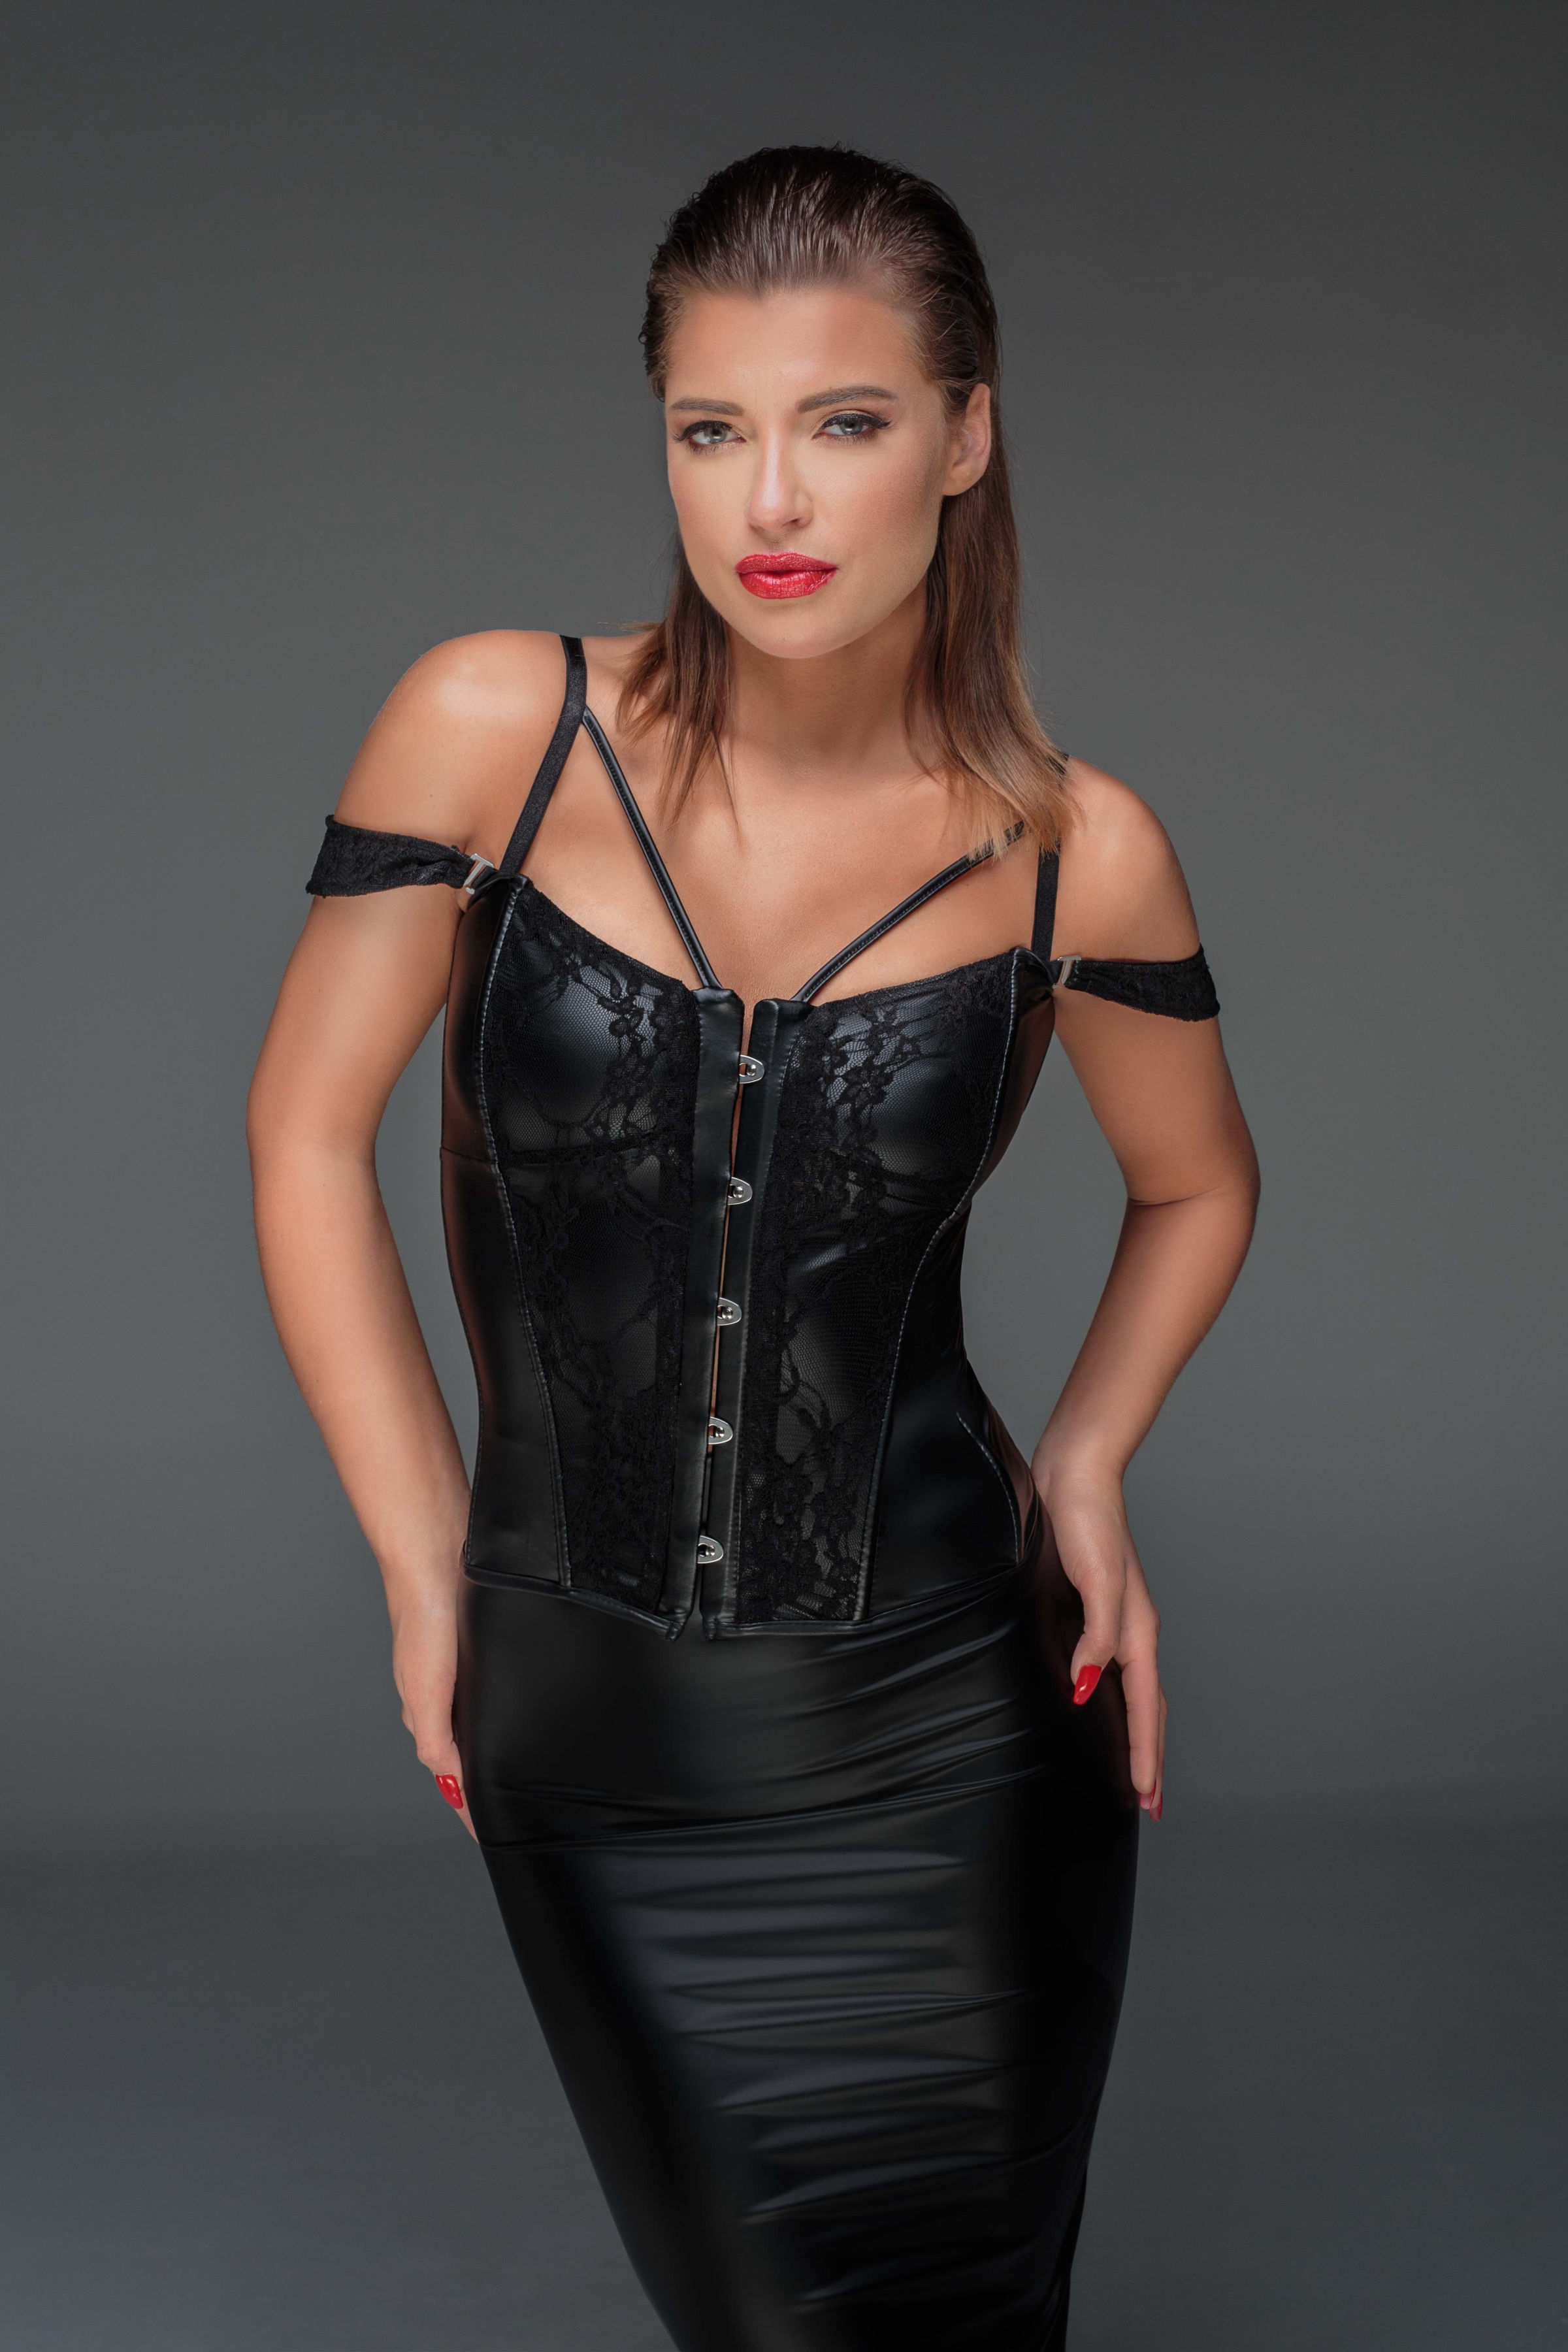 Noir Handmade F159 Corset with Lace and Powerwetlook with Detachable Straps M